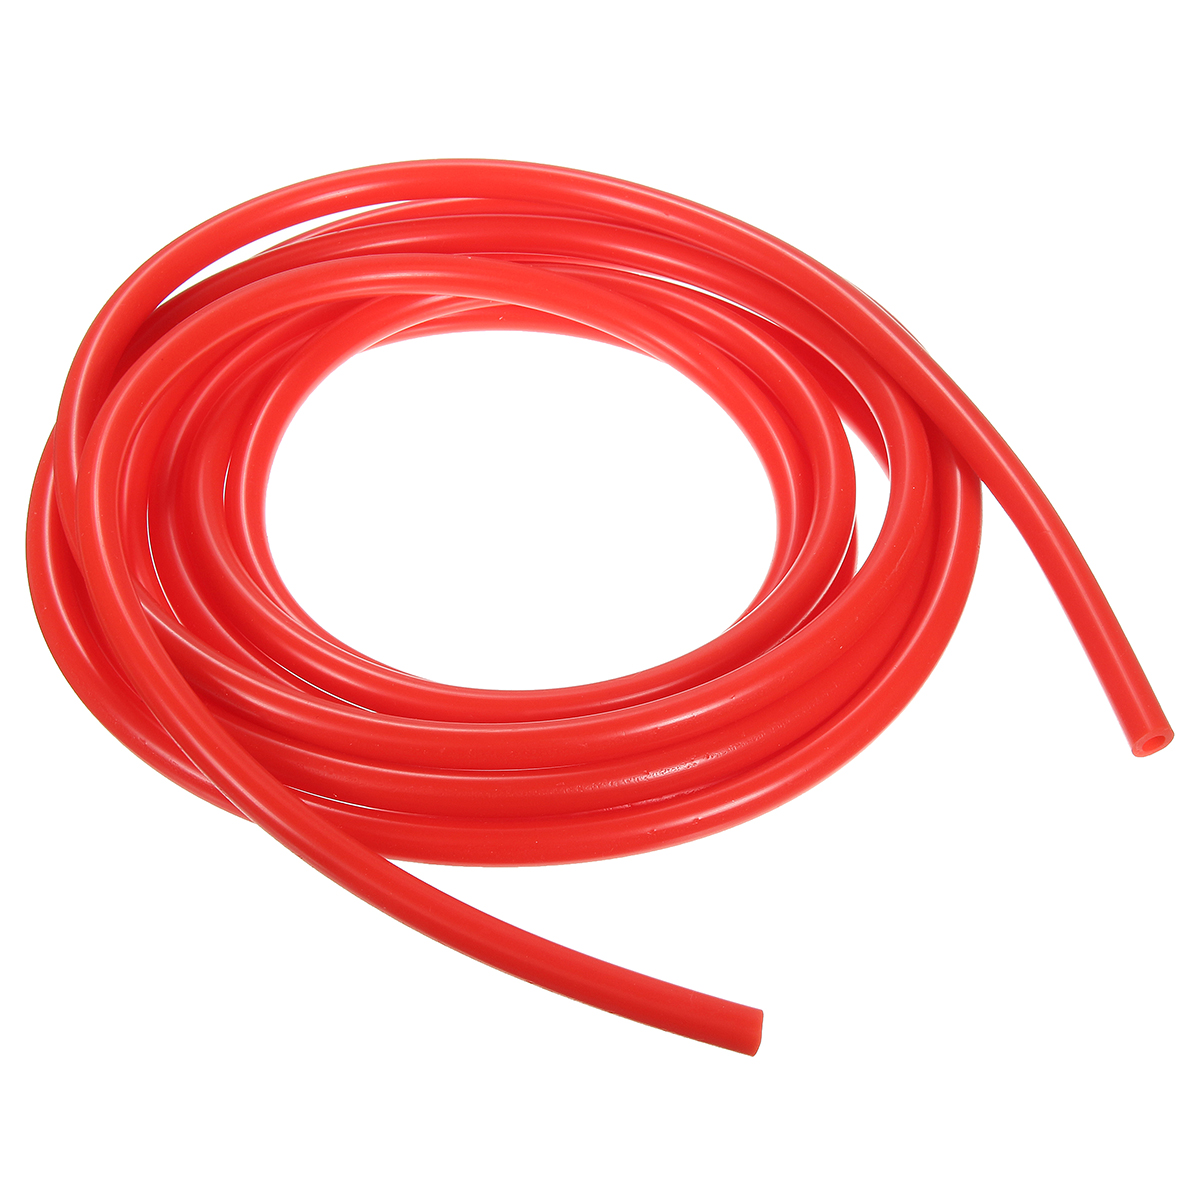 6mm 5 Meter Silicone Vacuum Hose Tube Tubing Line Pipe 16.4 Feet Blue Red Black